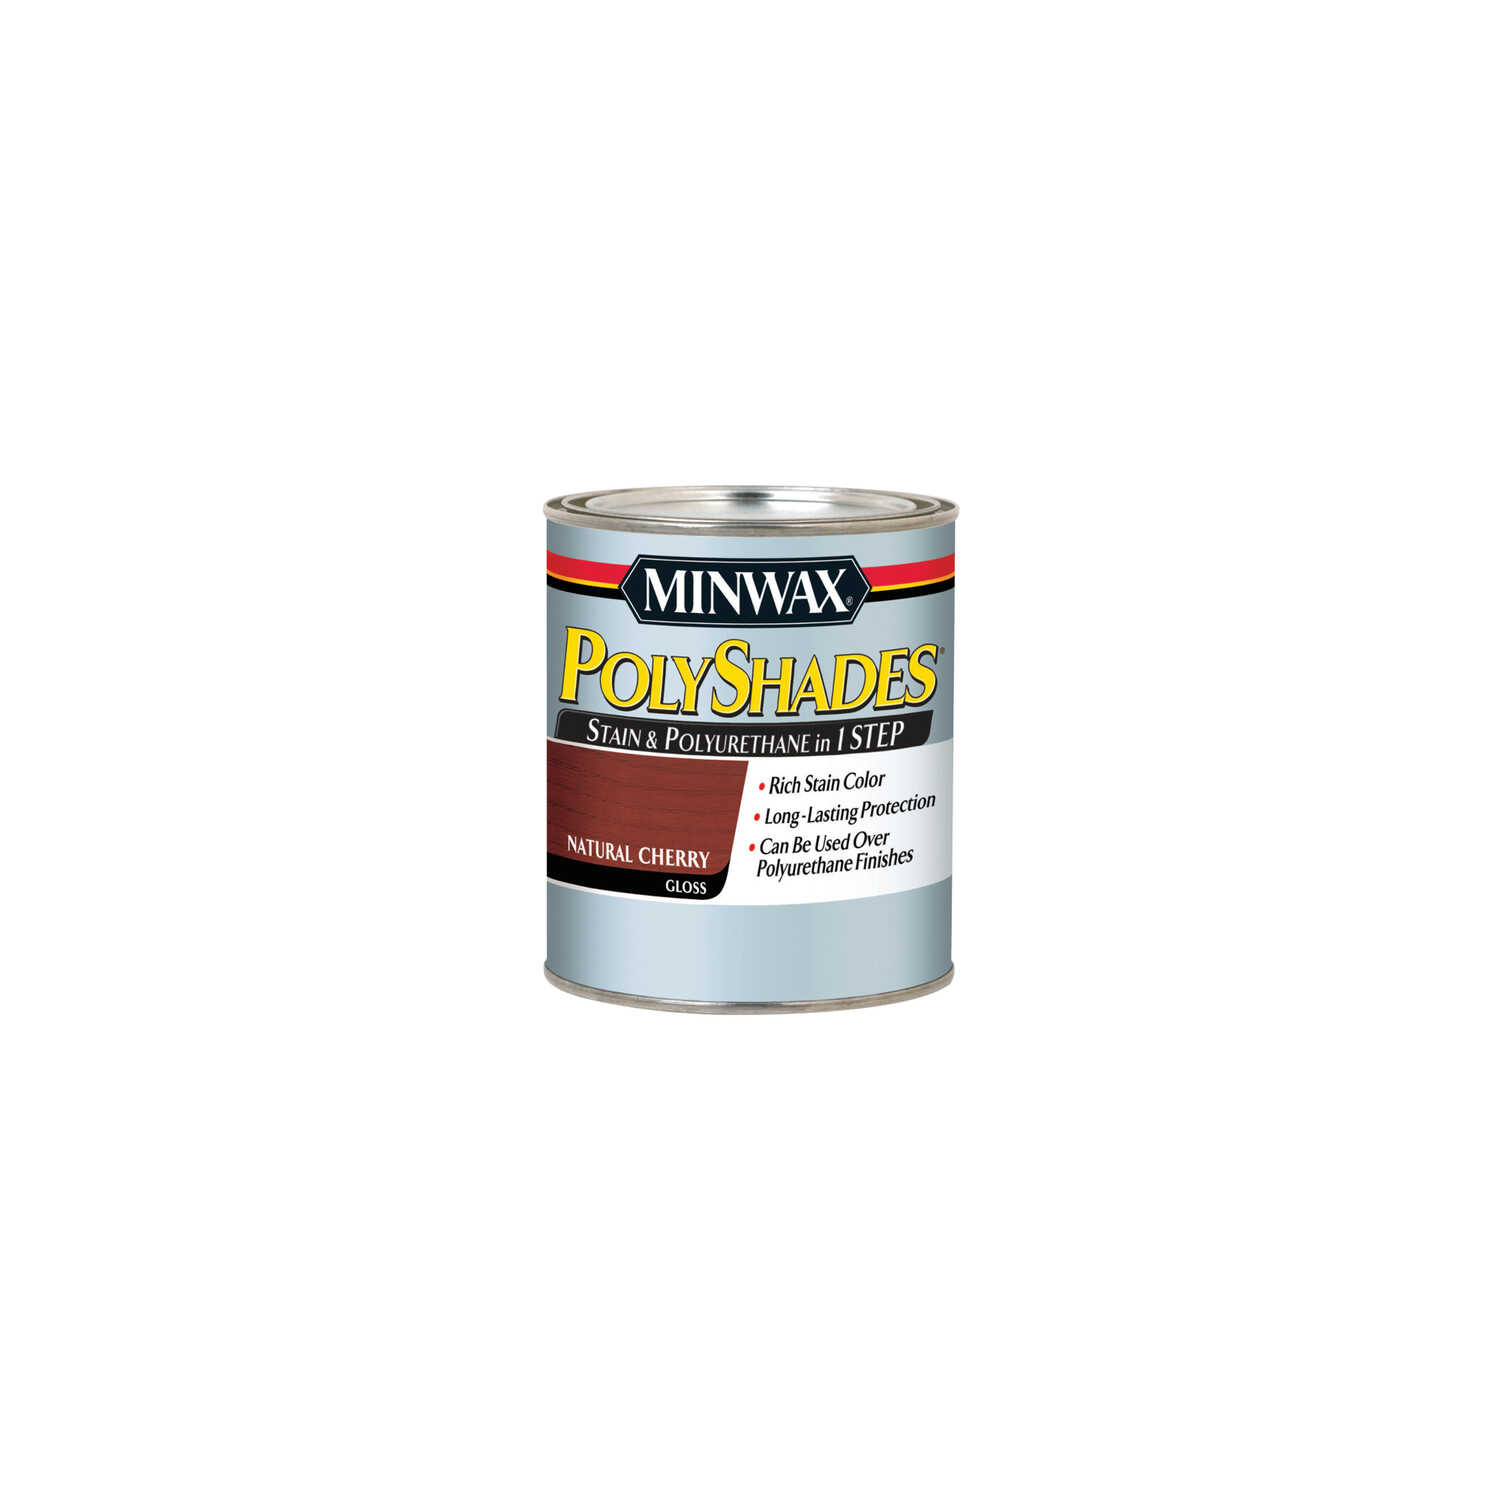 Minwax  PolyShades  Semi-Transparent  Gloss  Natural Cherry  Oil-Based  Stain  0.5 pt.